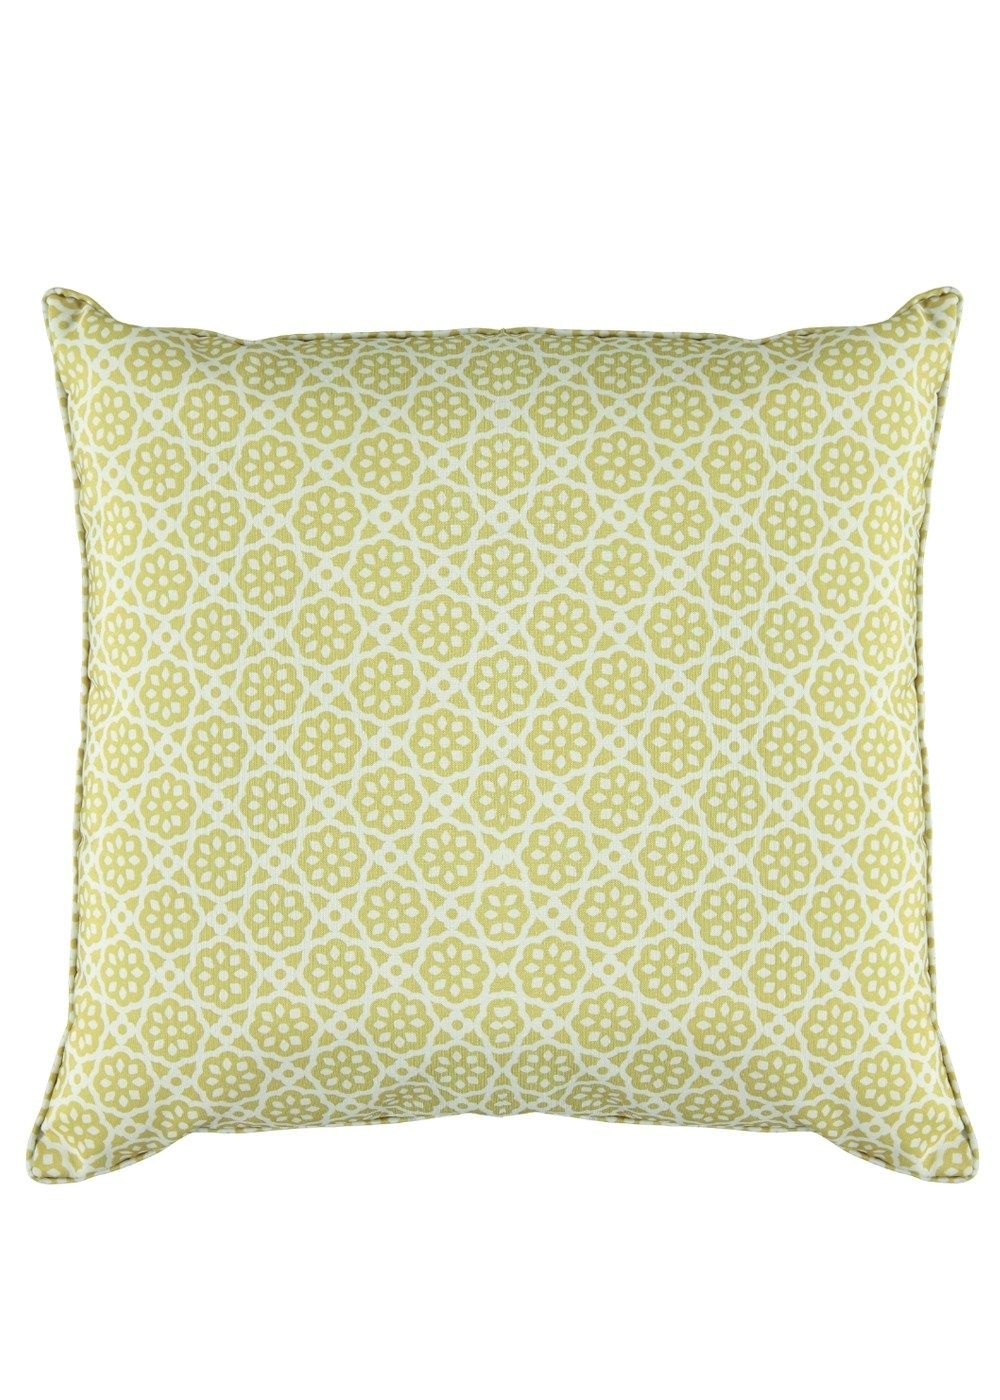 Botanical outdoor scatter cushion cm x cm x cm matalan